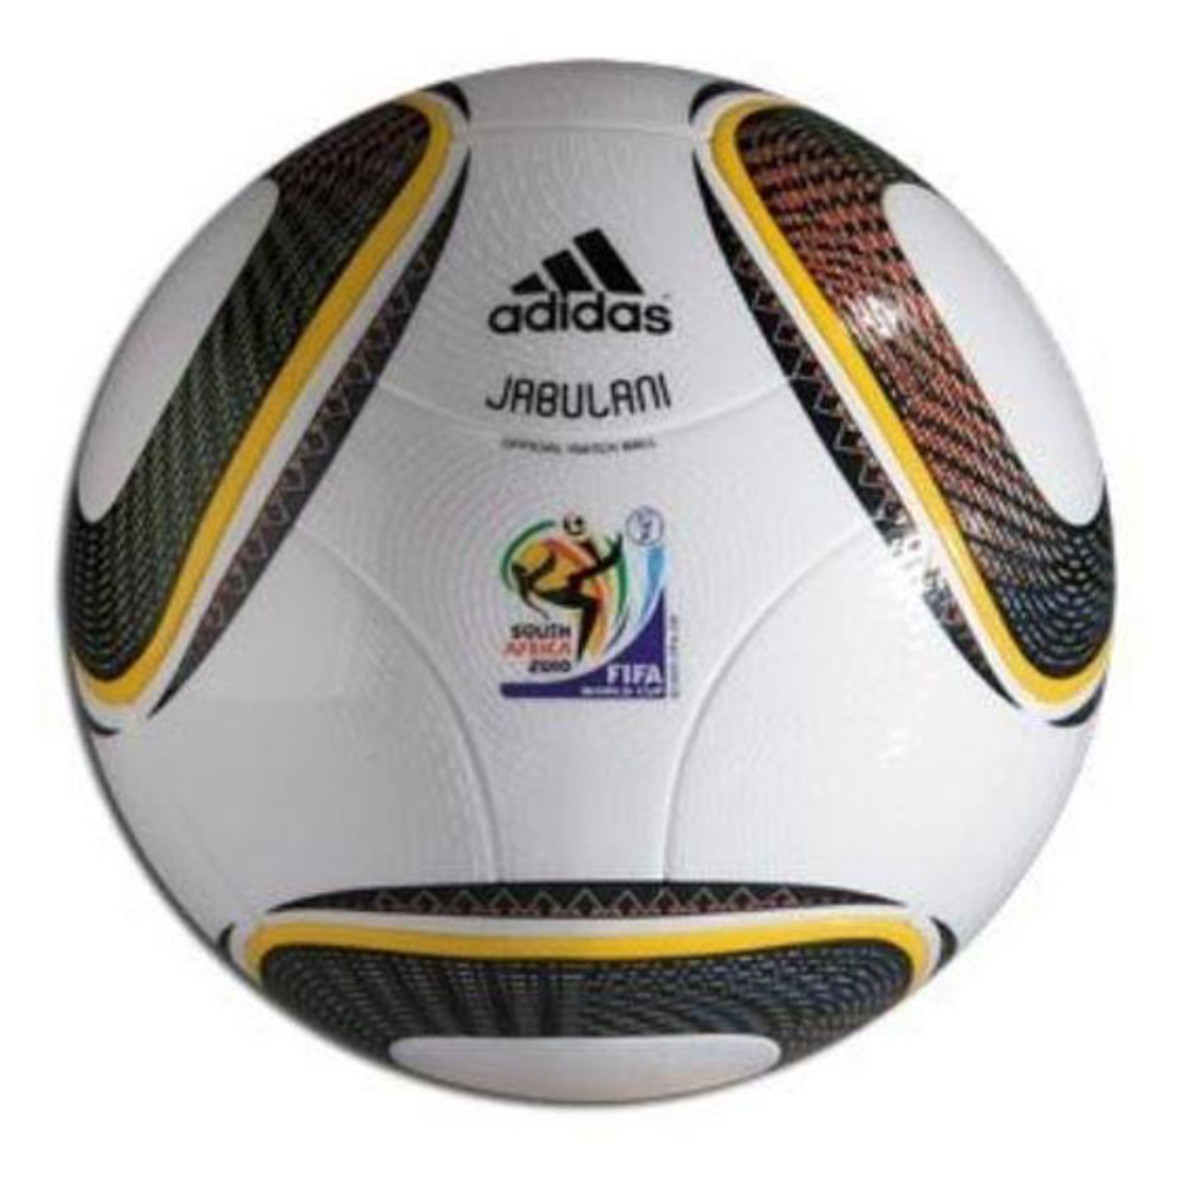 write essay fifa world cup 2010 The next world cup will be held in south africa, between 11 june and 11 july 2010, and the 2014 world cup will be held in brazil 1990 fifa world cup italy west germany won fifa world cup title for the third time in 1990 as they defeated argentina in the final 1-0 in rome.